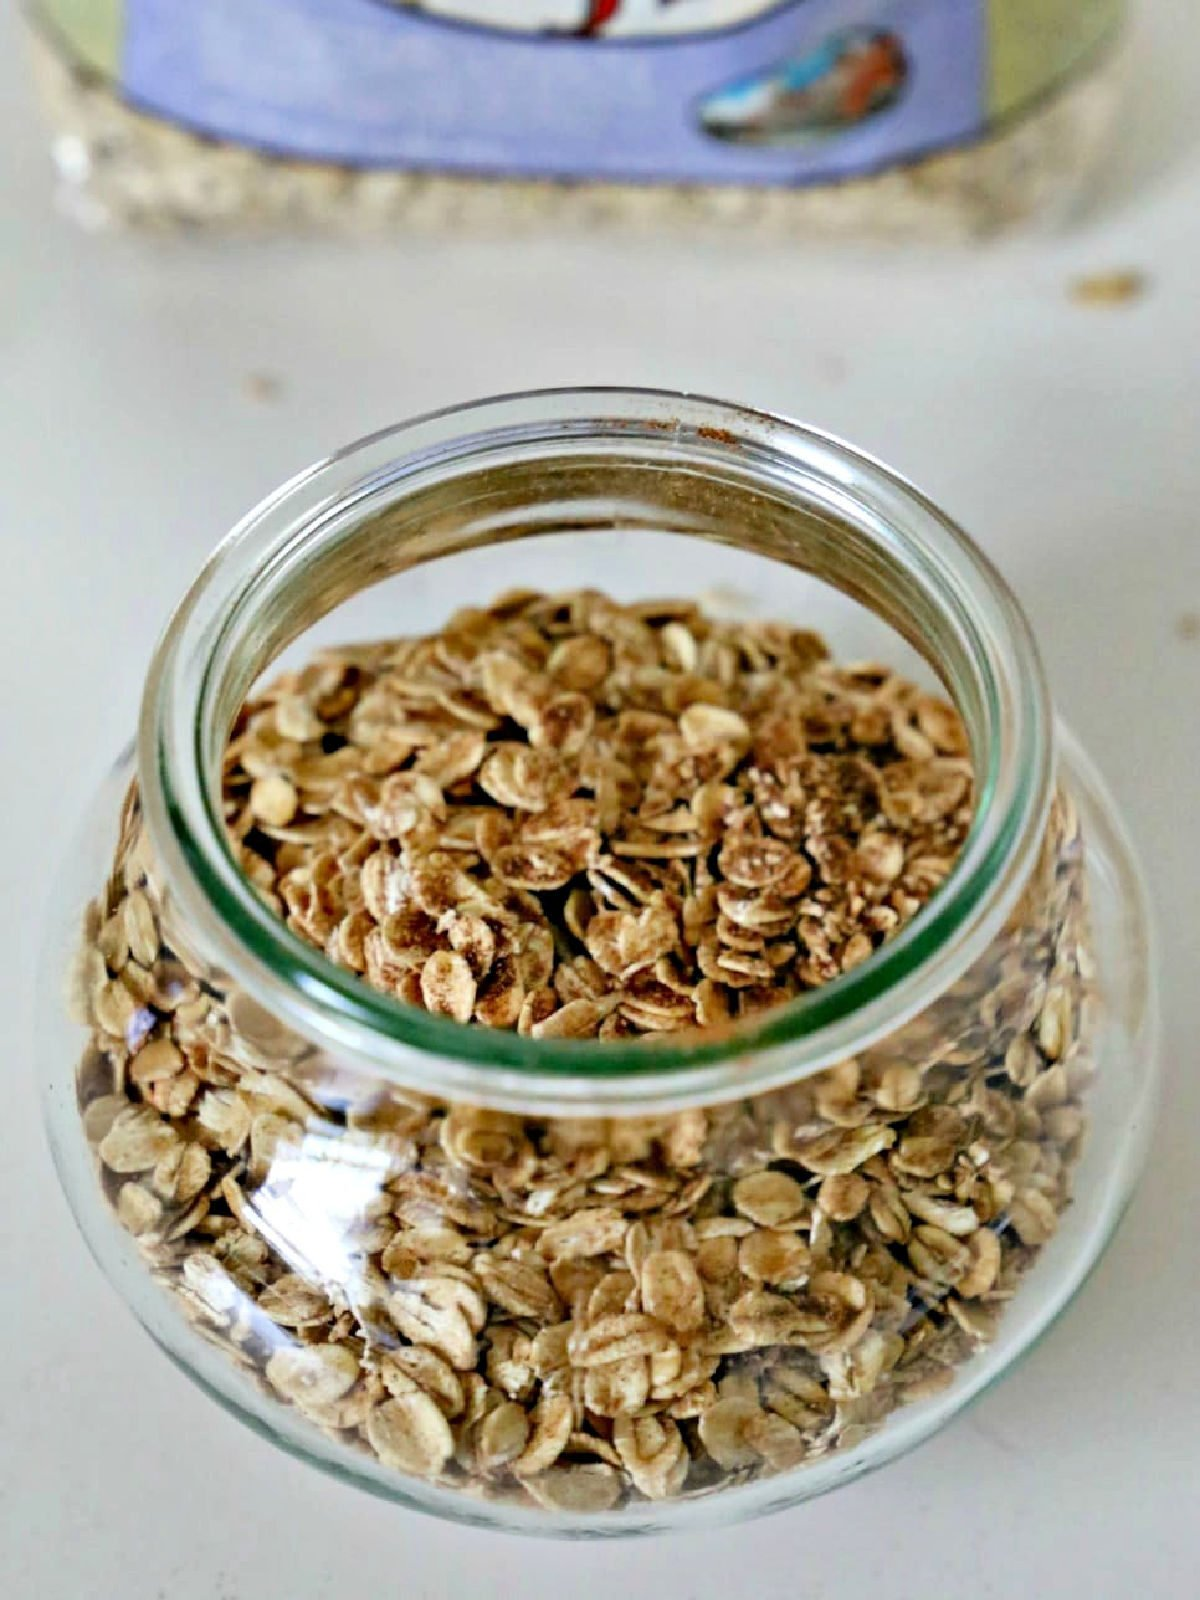 Glass jar with old fashioned oats.